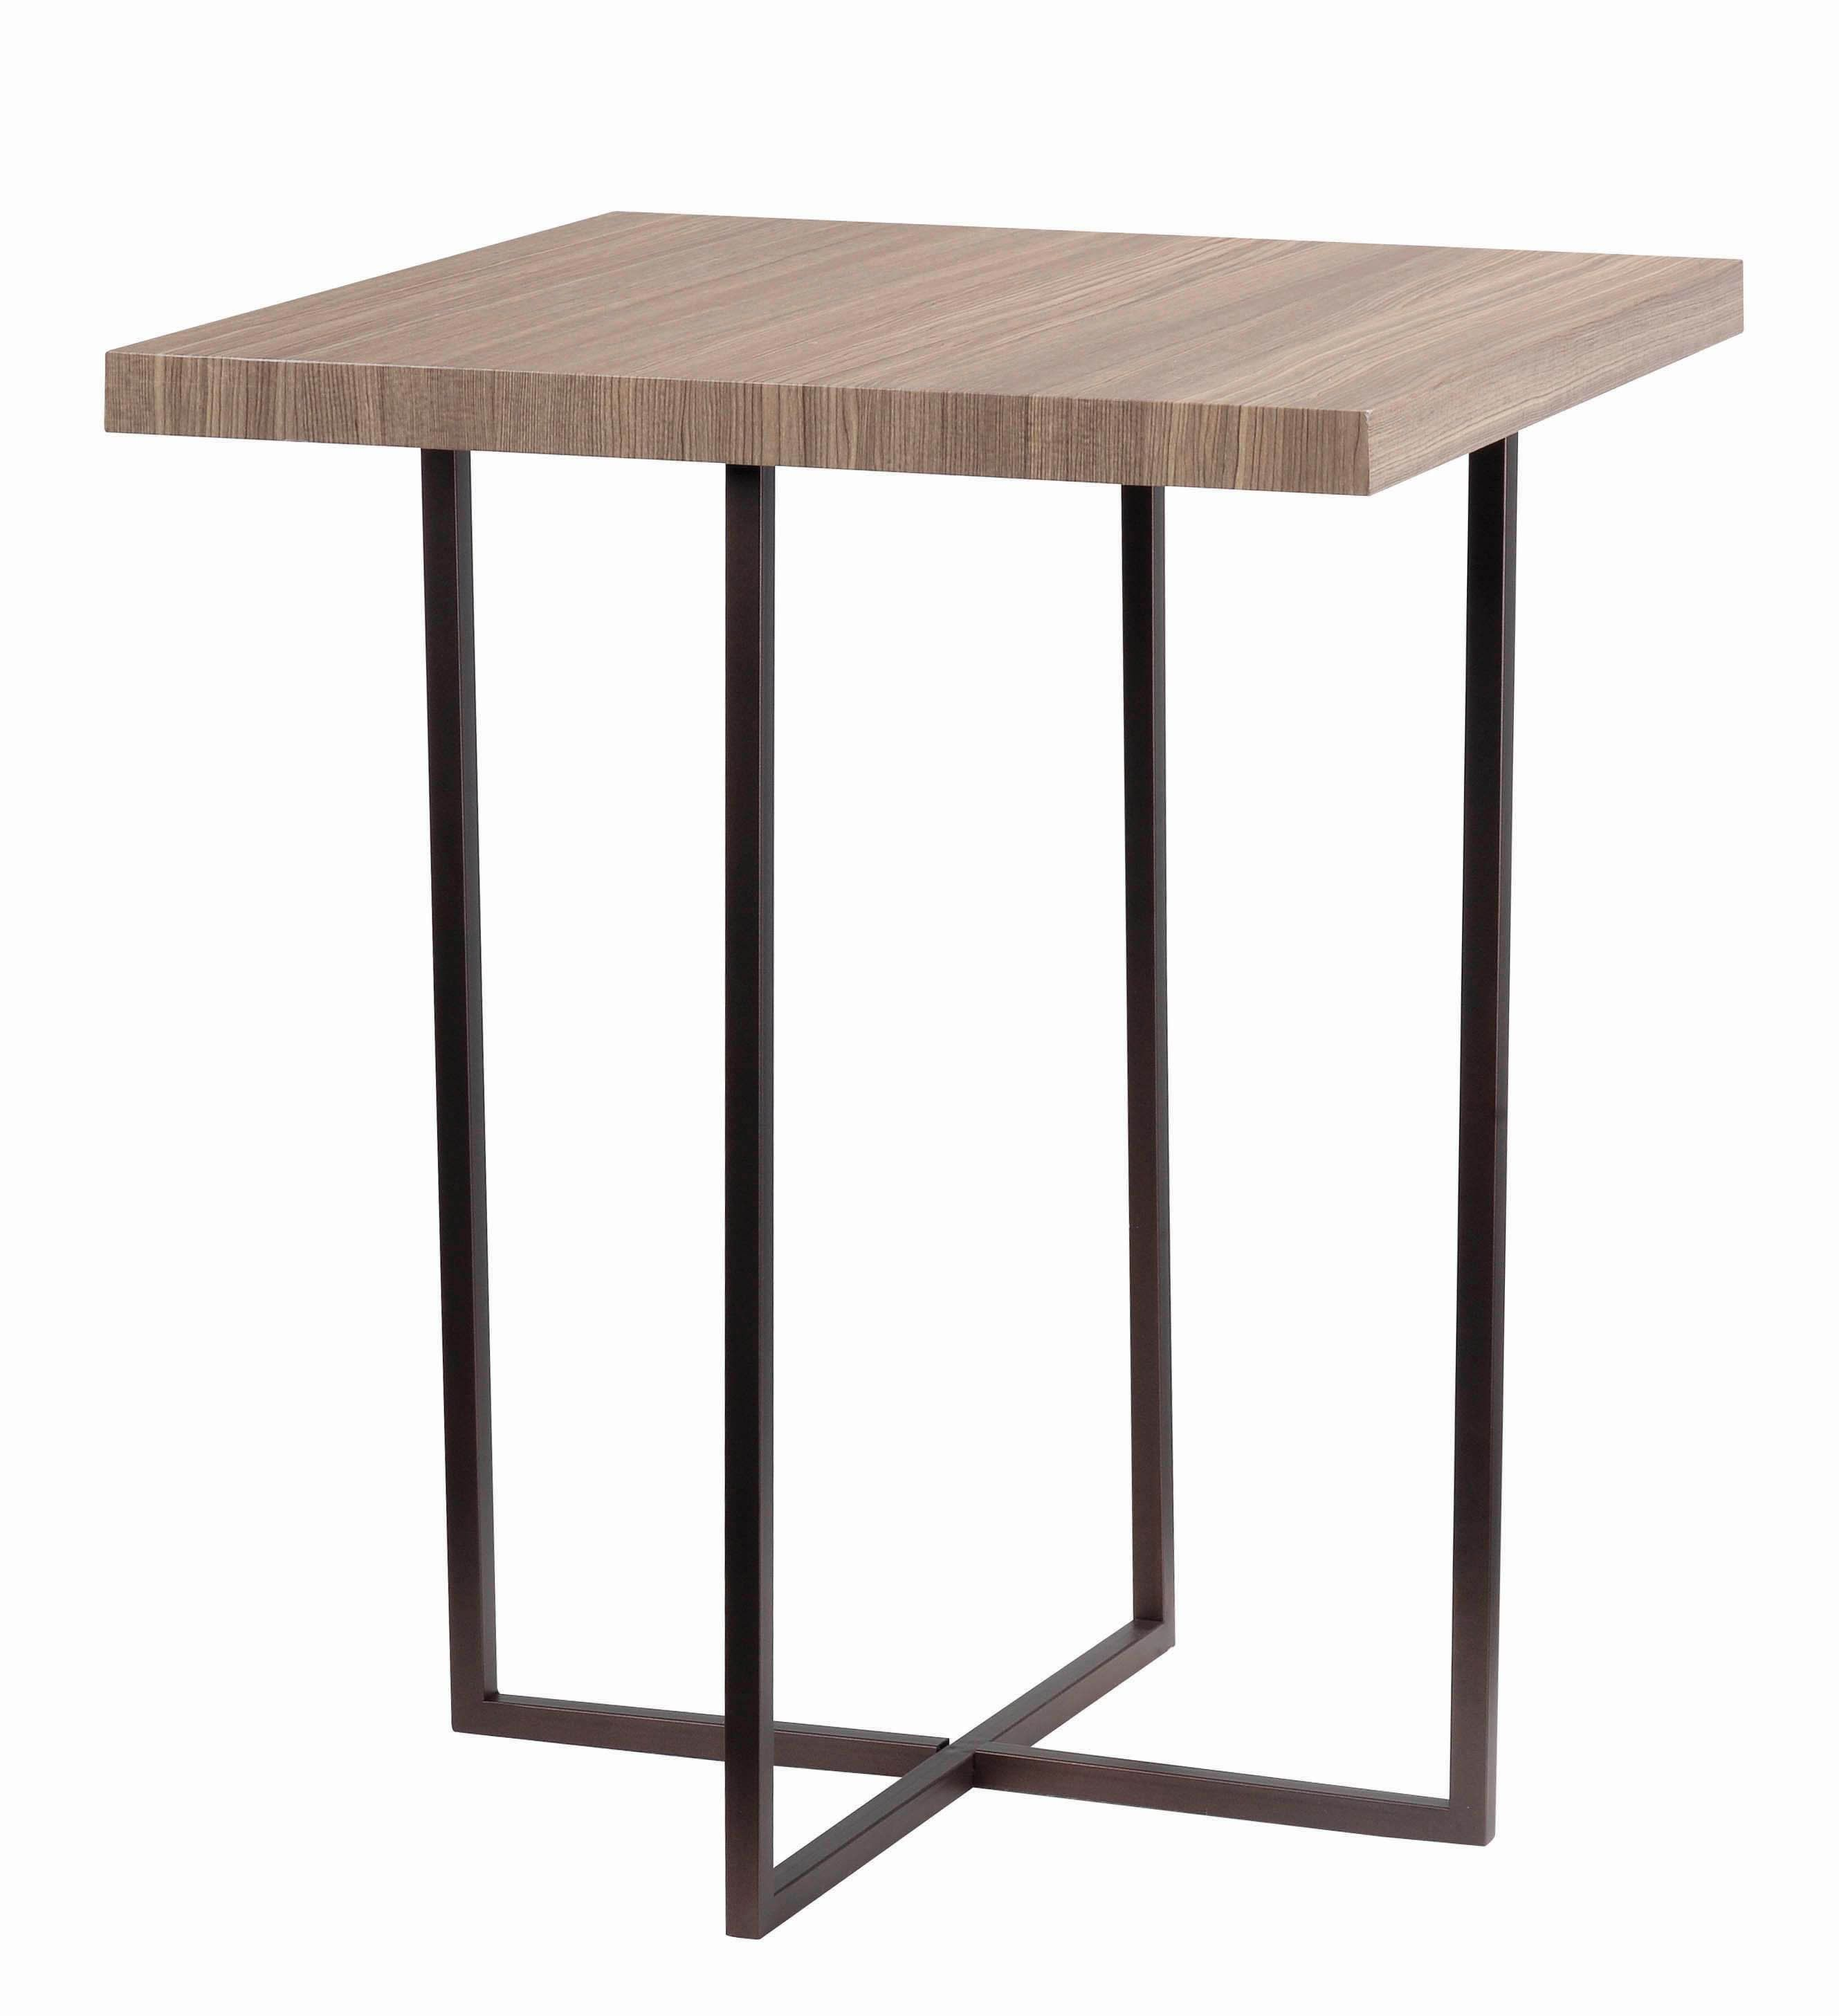 Admirable Corin Side Table Products Pinterest Table End Tables Caraccident5 Cool Chair Designs And Ideas Caraccident5Info